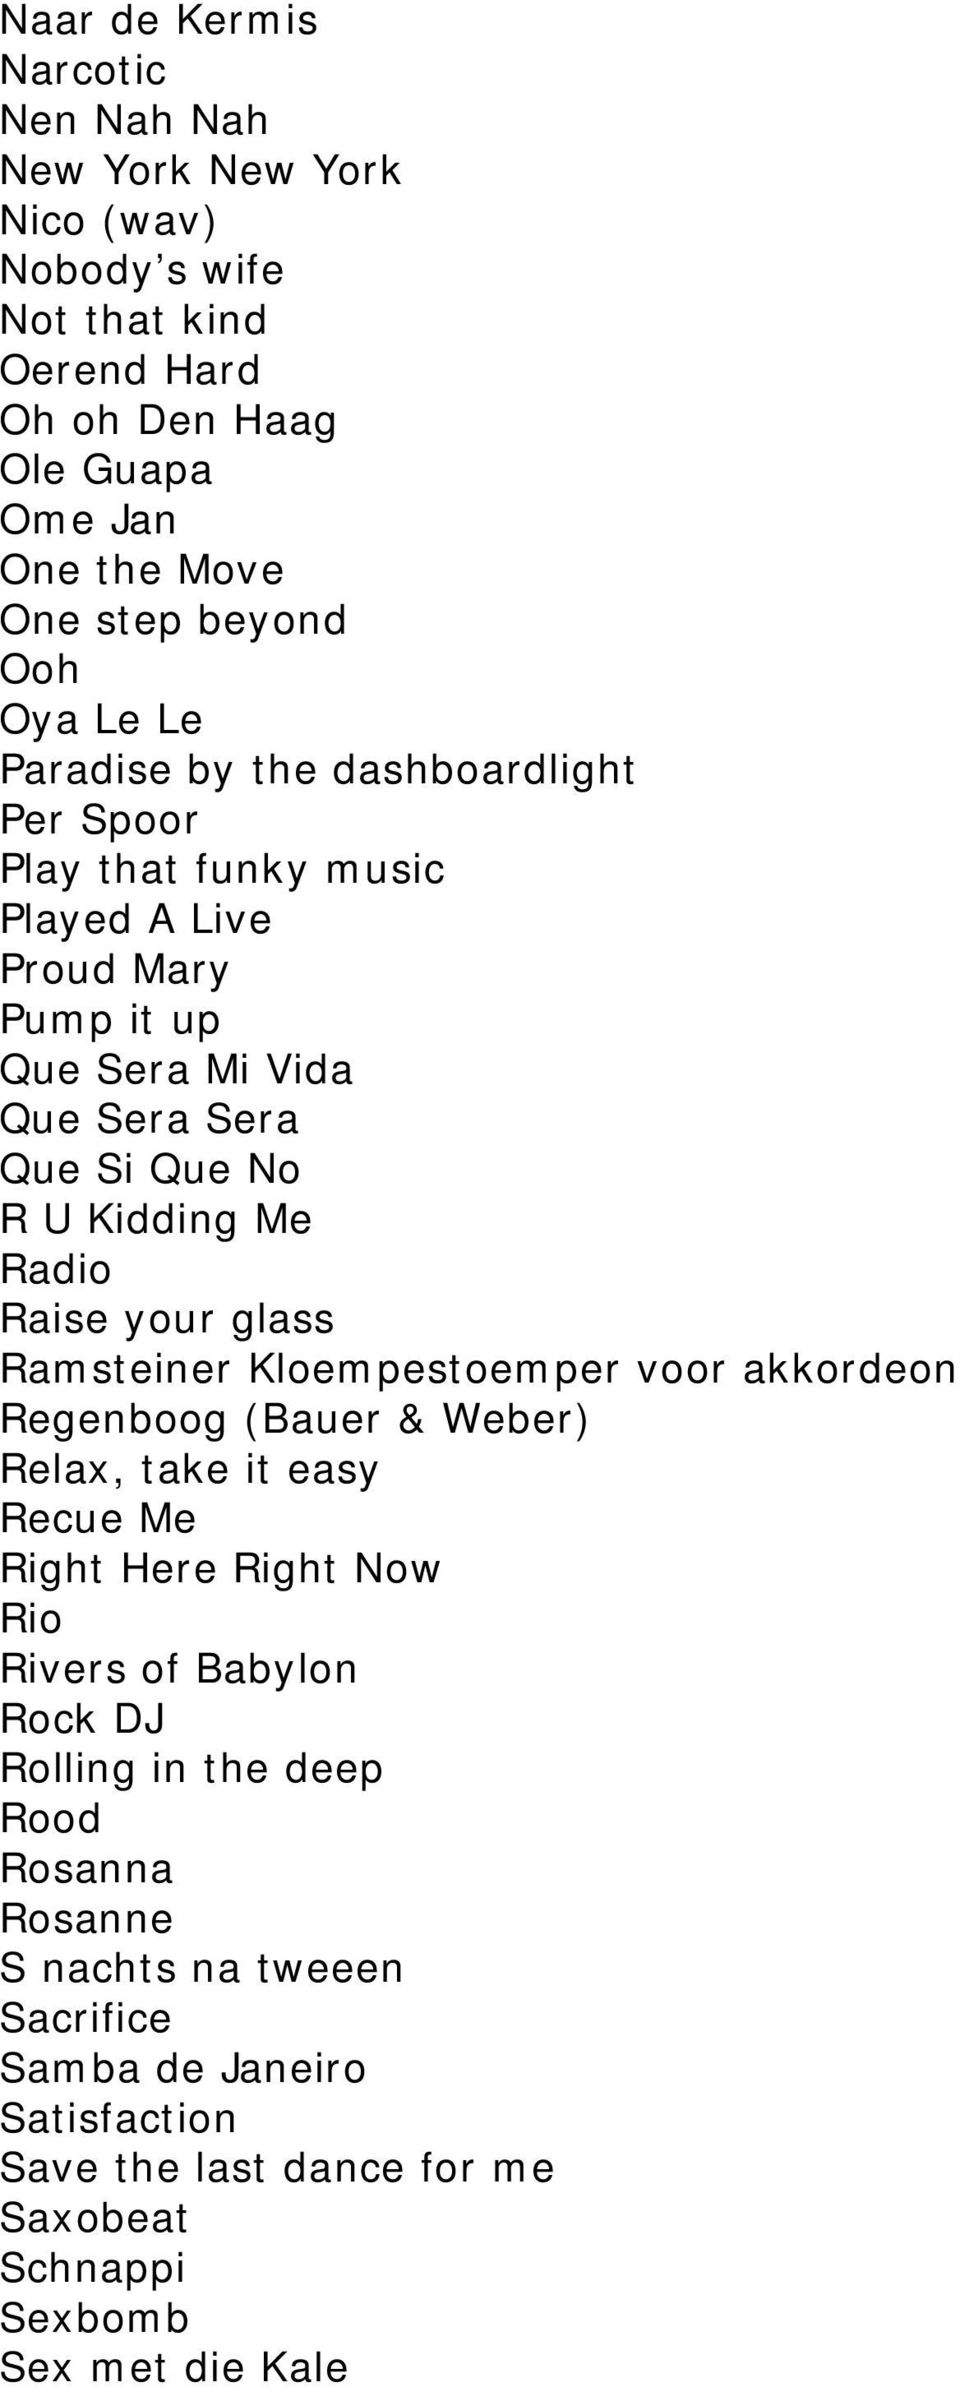 Me Radio Raise your glass Ramsteiner Kloempestoemper voor akkordeon Regenboog (Bauer & Weber) Relax, take it easy Recue Me Right Here Right Now Rio Rivers of Babylon